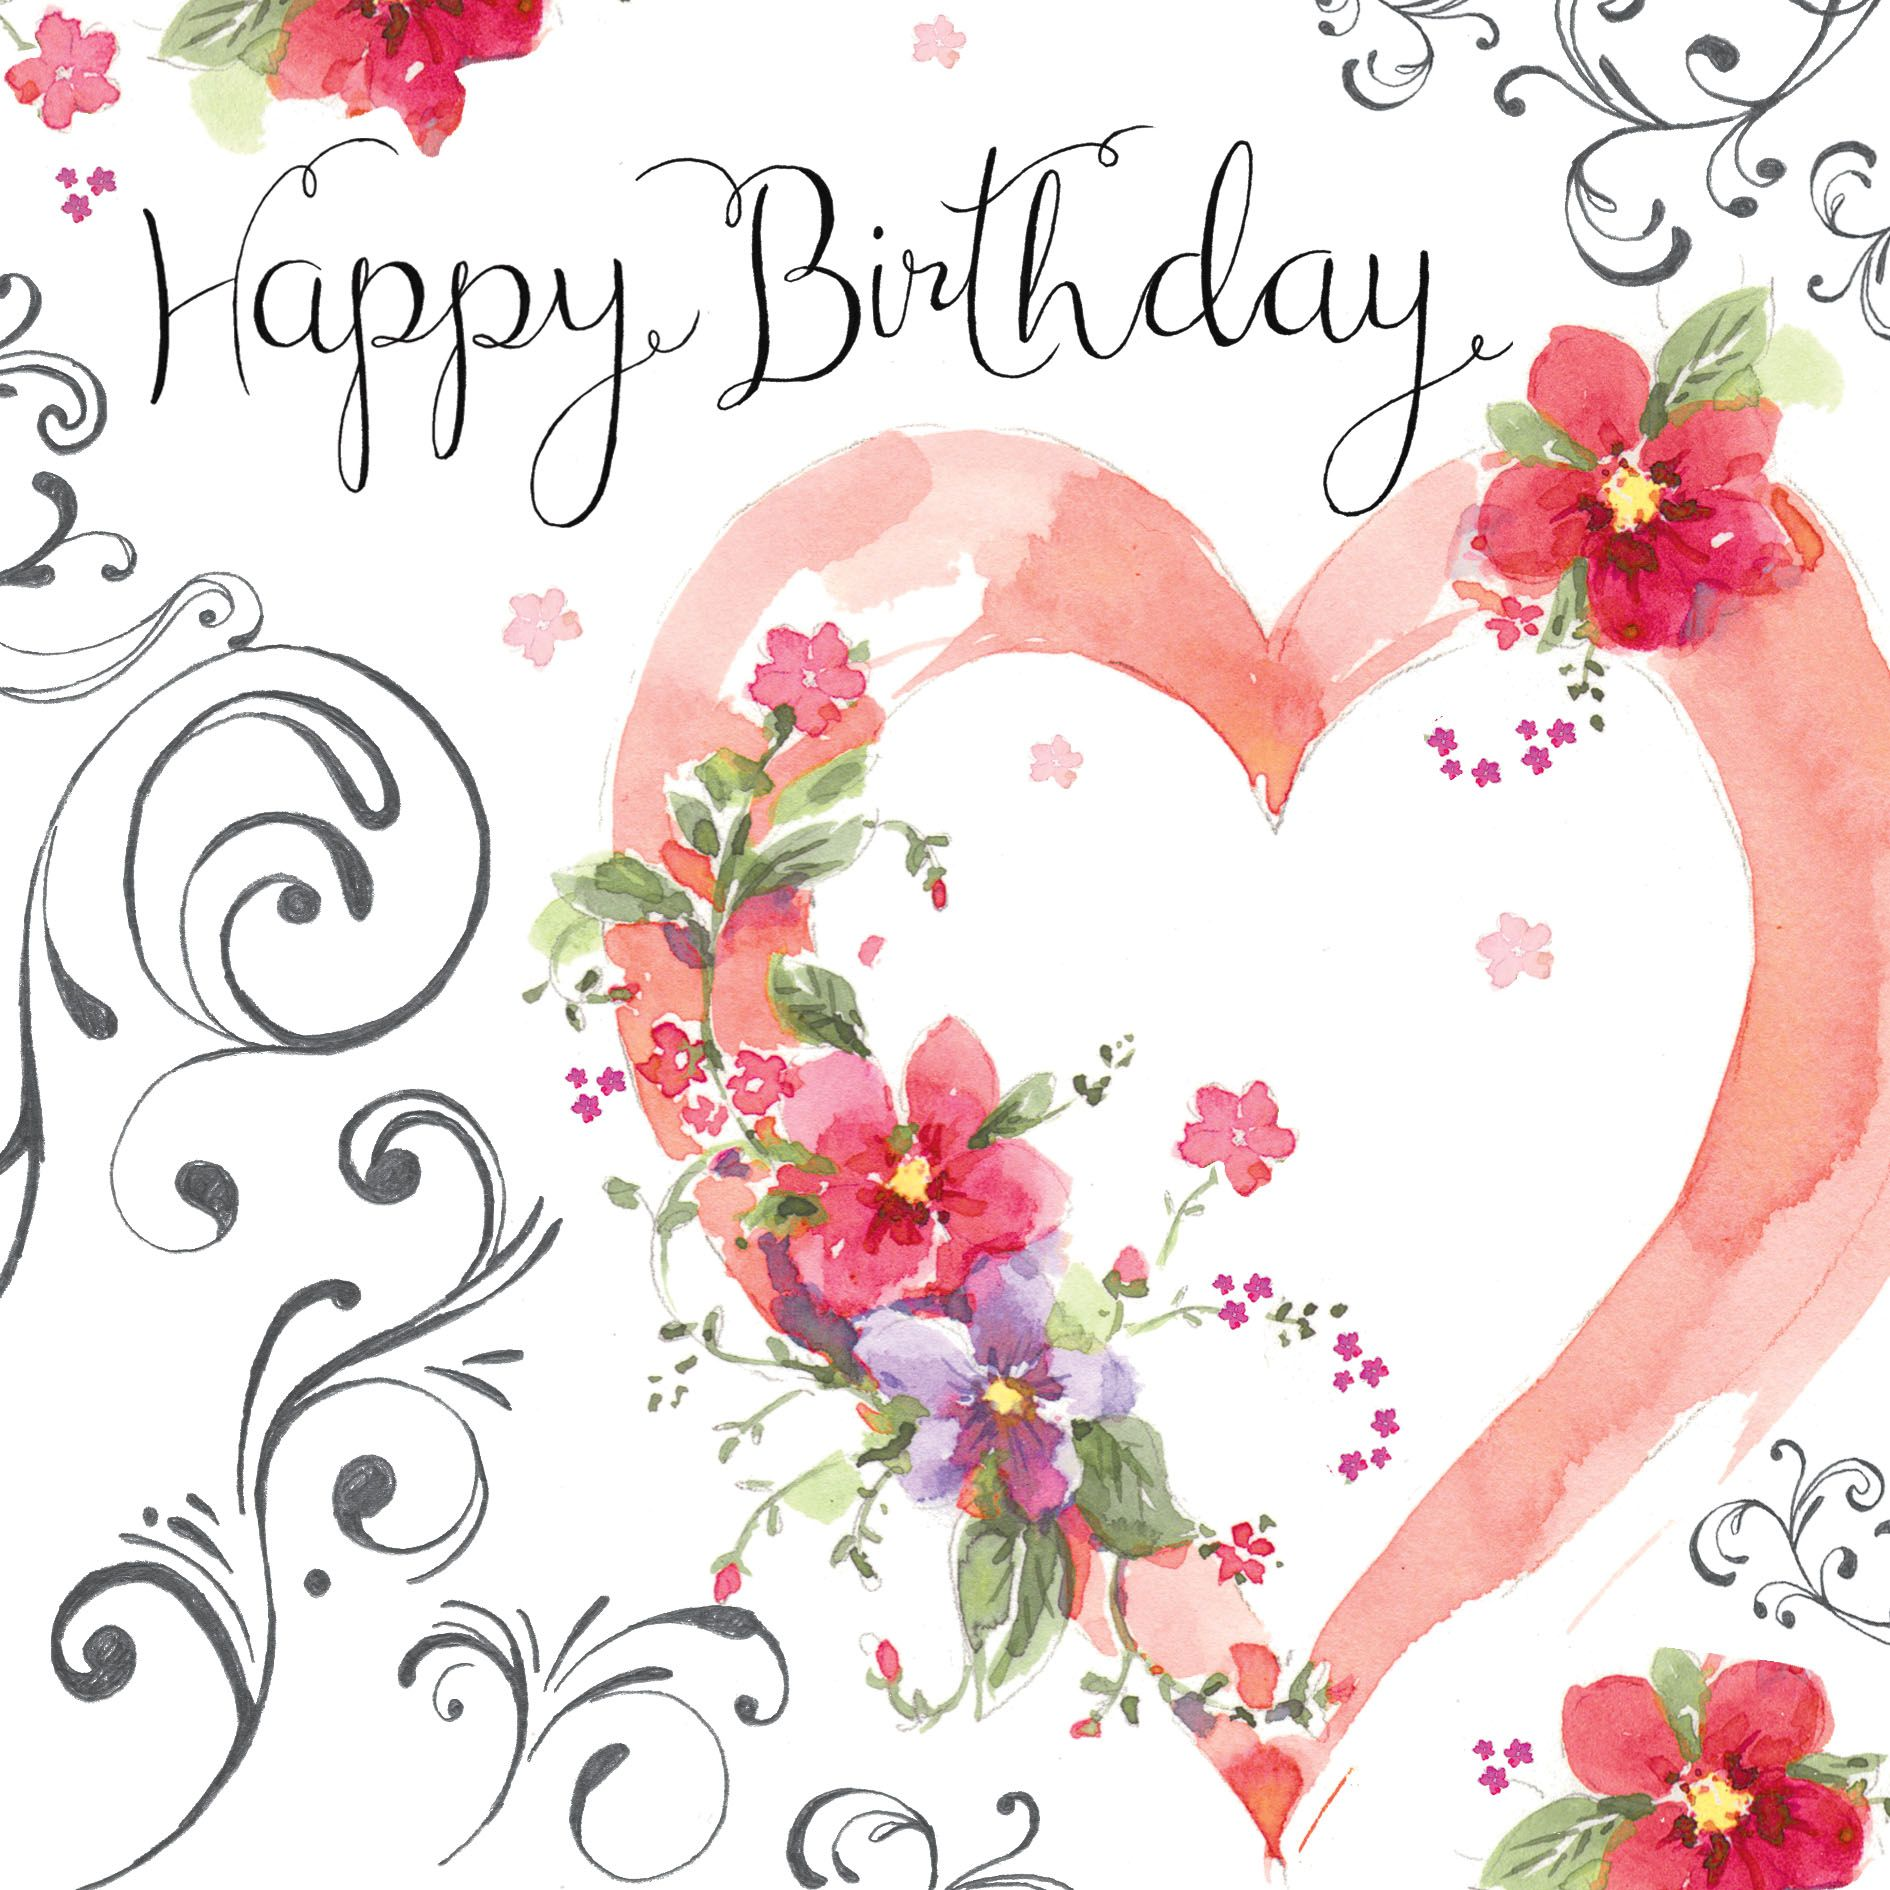 Happy birthday niece clipart 5 » Clipart Station.